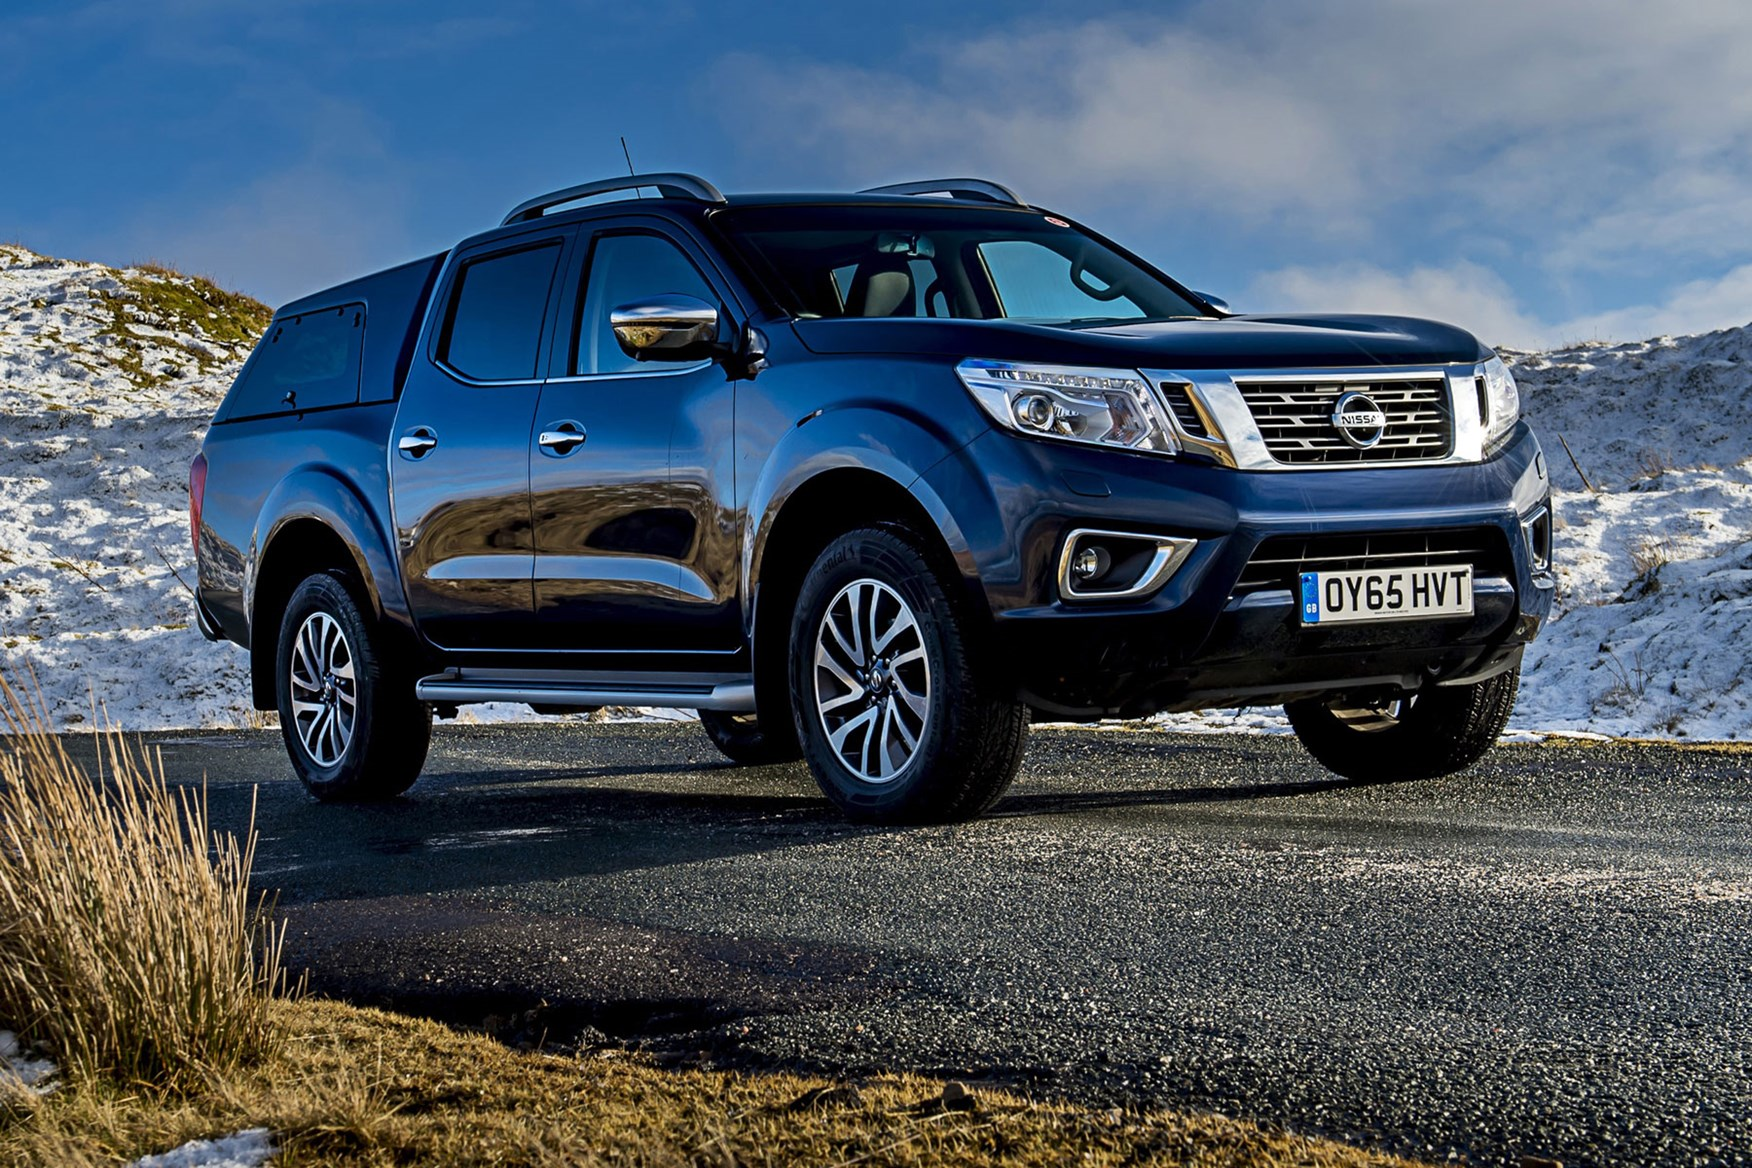 Nissan Navara review - front view, blue with hardtop